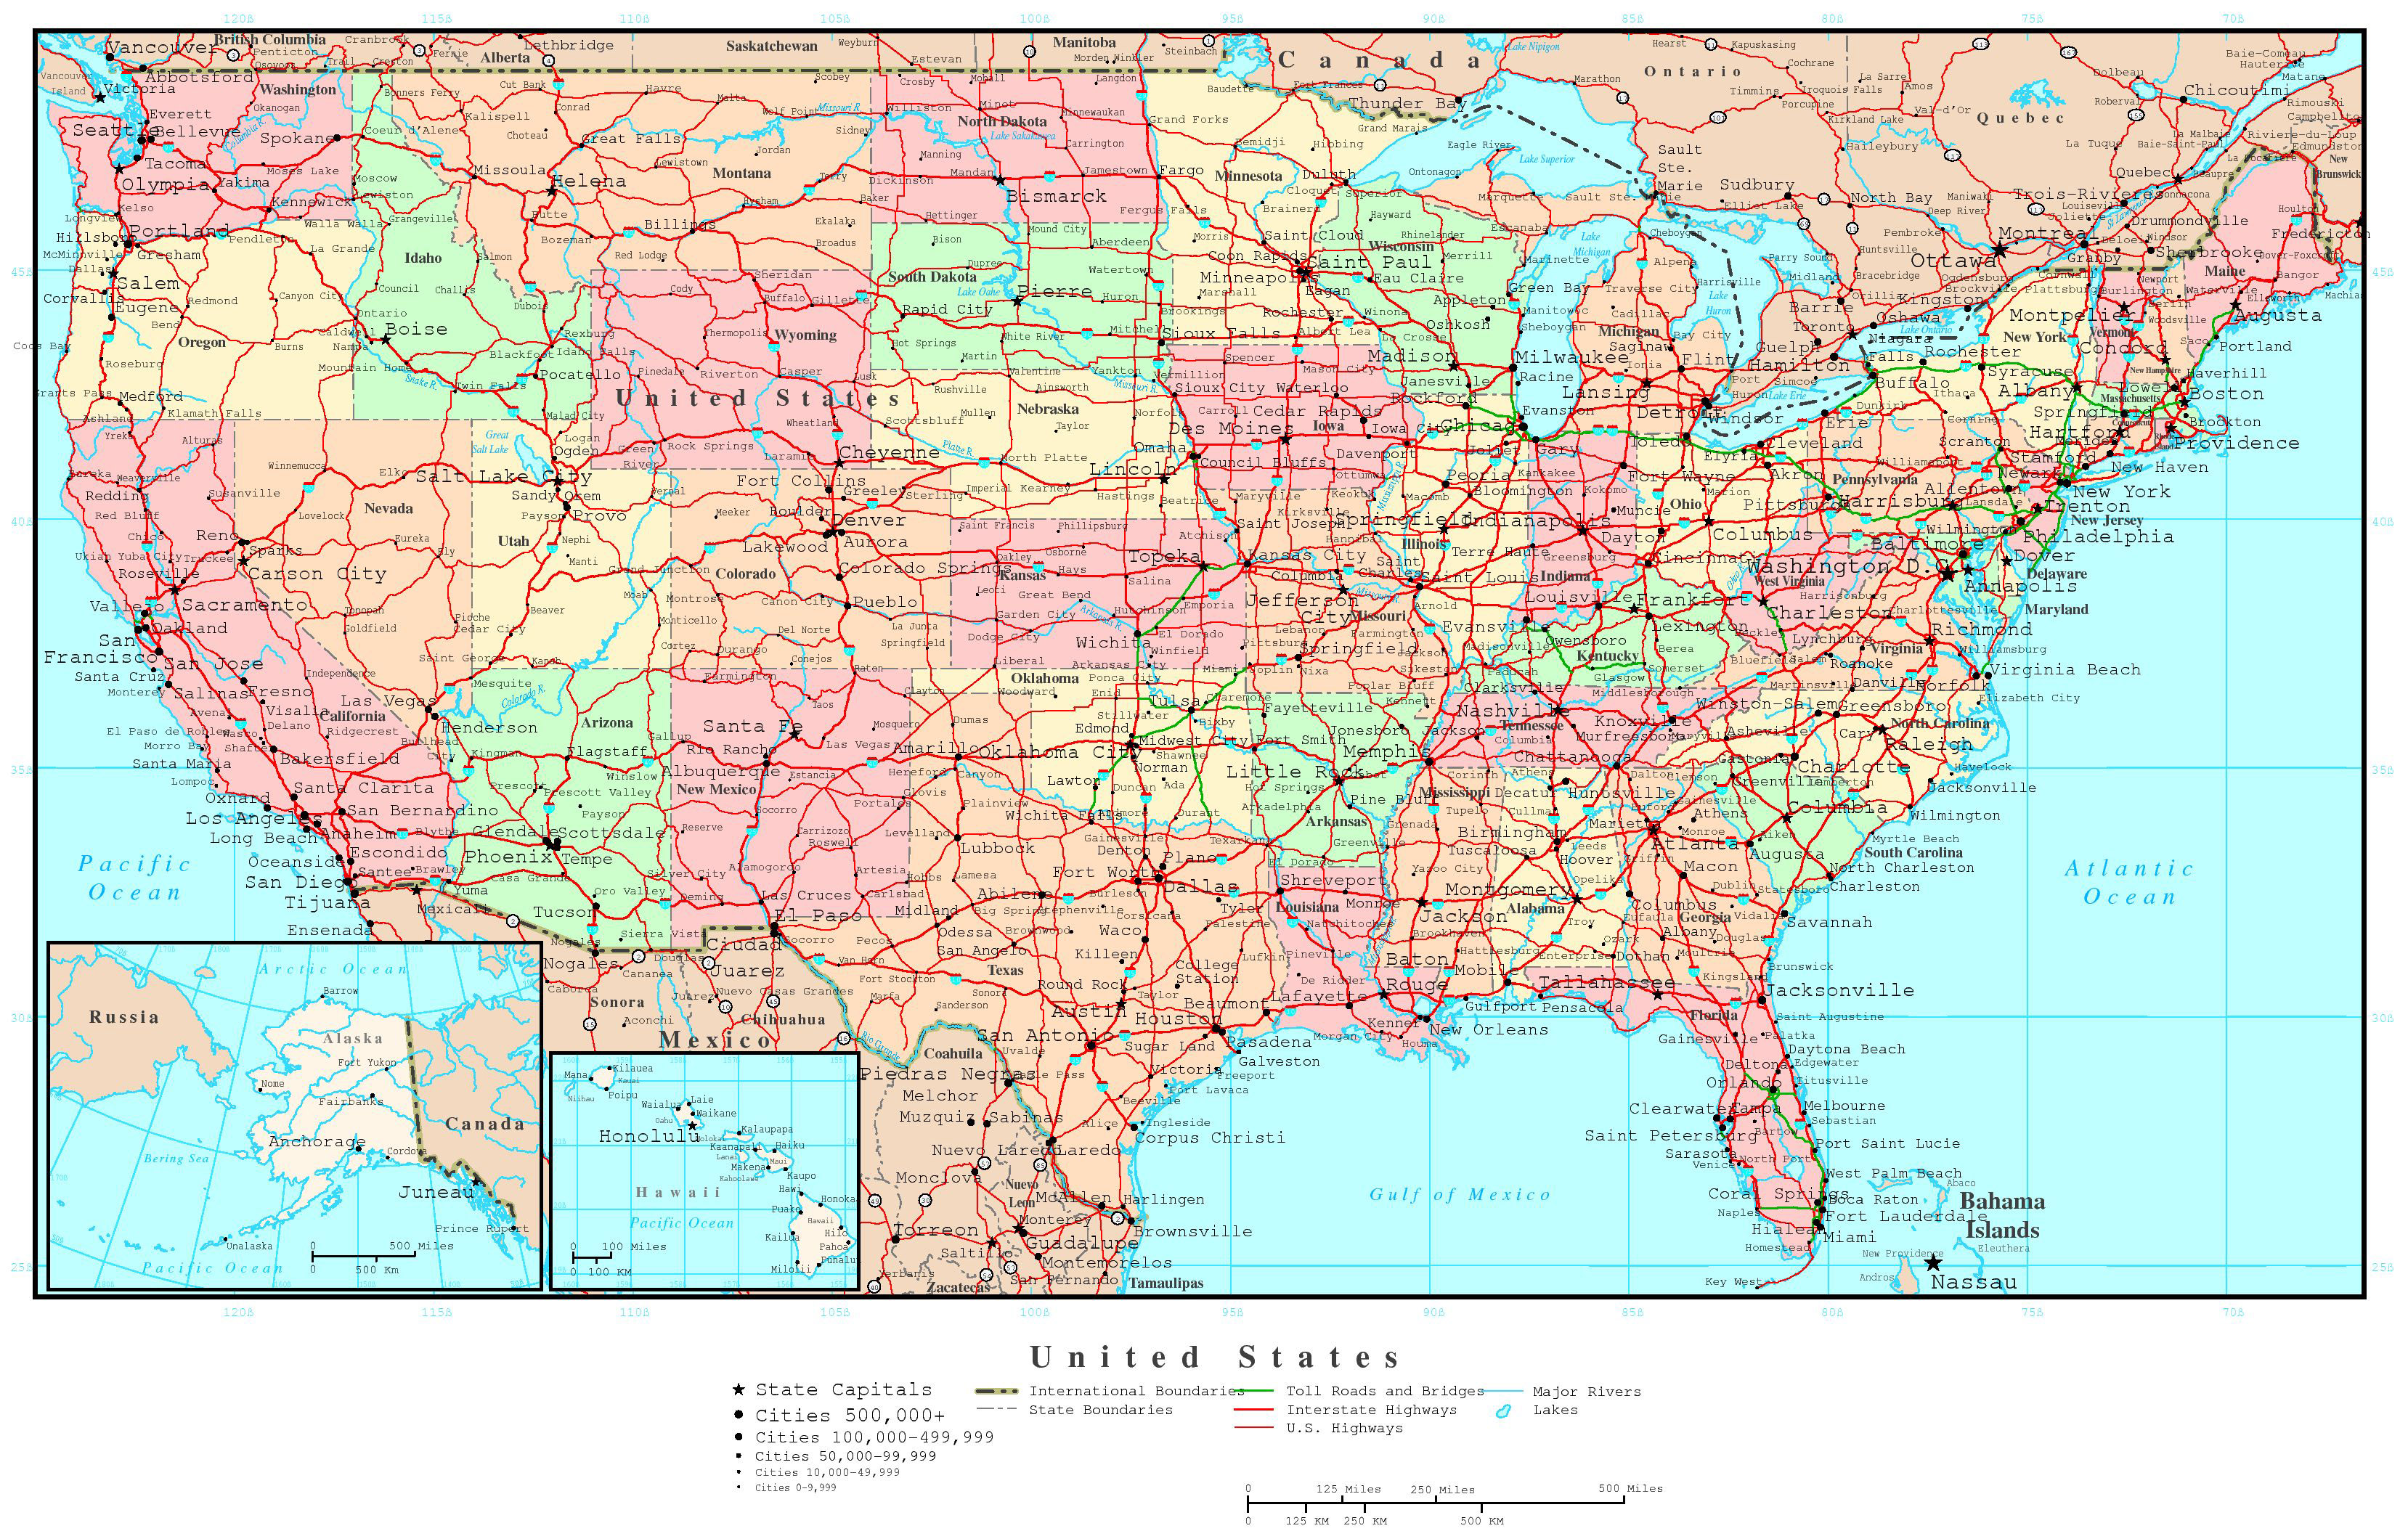 United States Of America Map HD Wallpapers Backgrounds - Images for map of usa